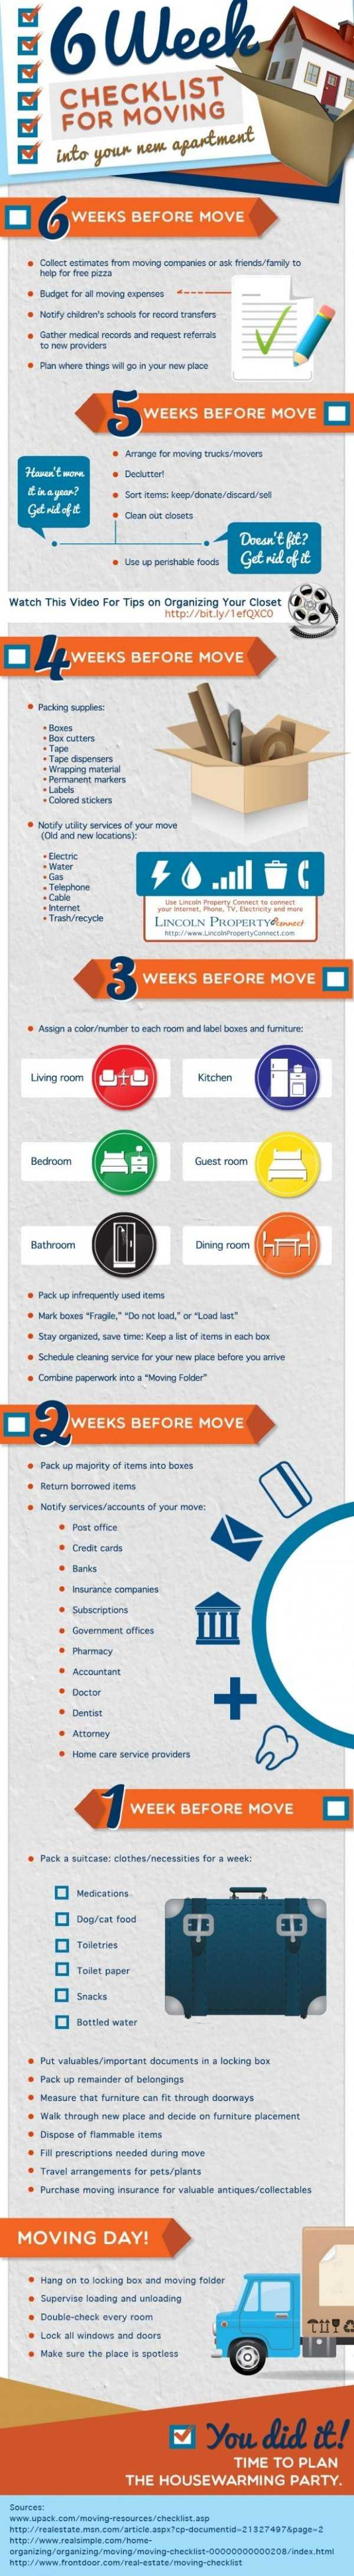 Moving On Up Infographic